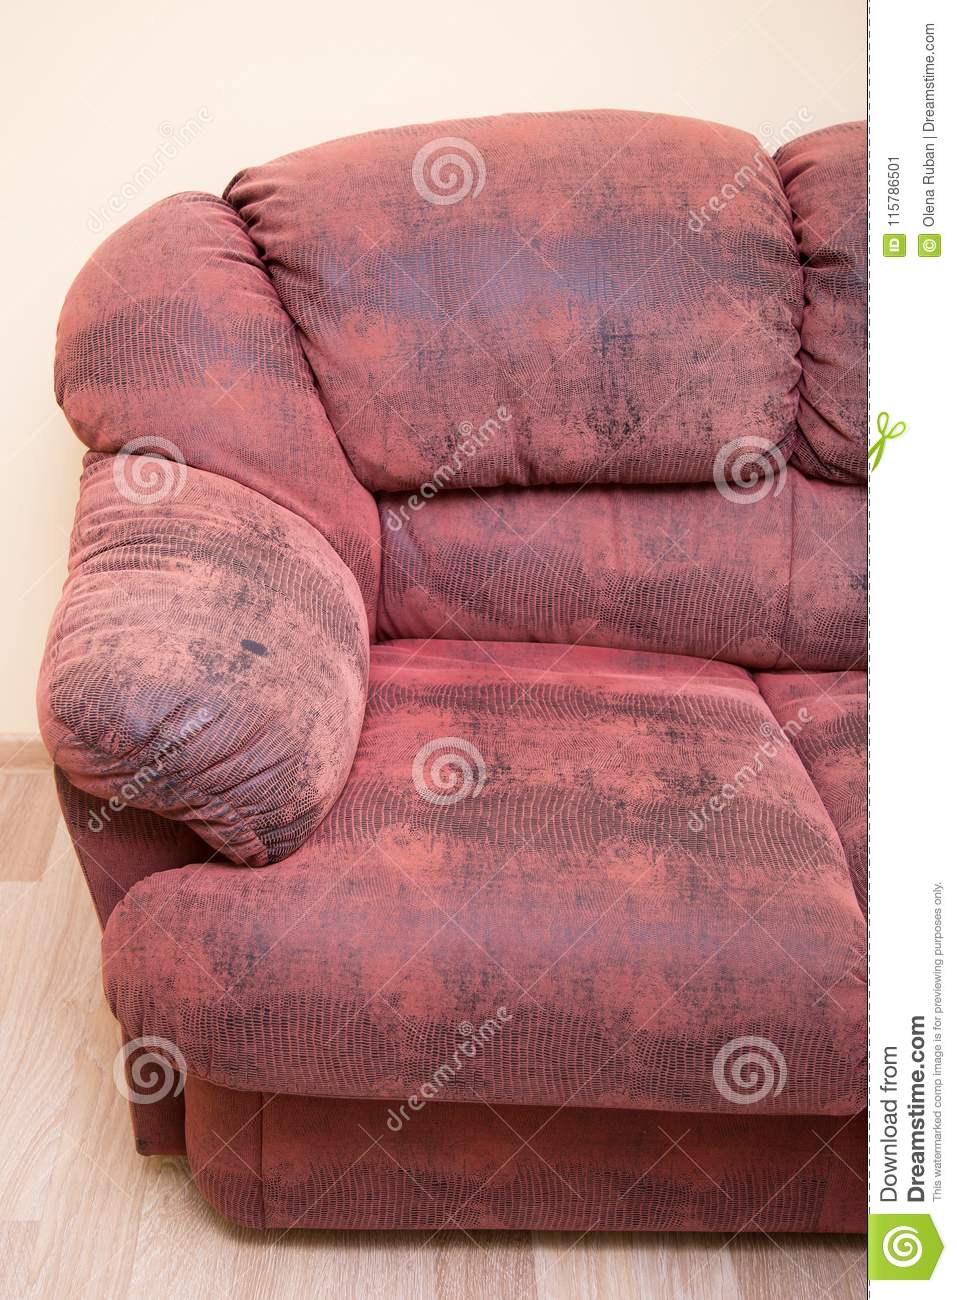 leather red sofa two person dimensions armrest of stock image amrest color 115786501 picture half couch soft place for rest